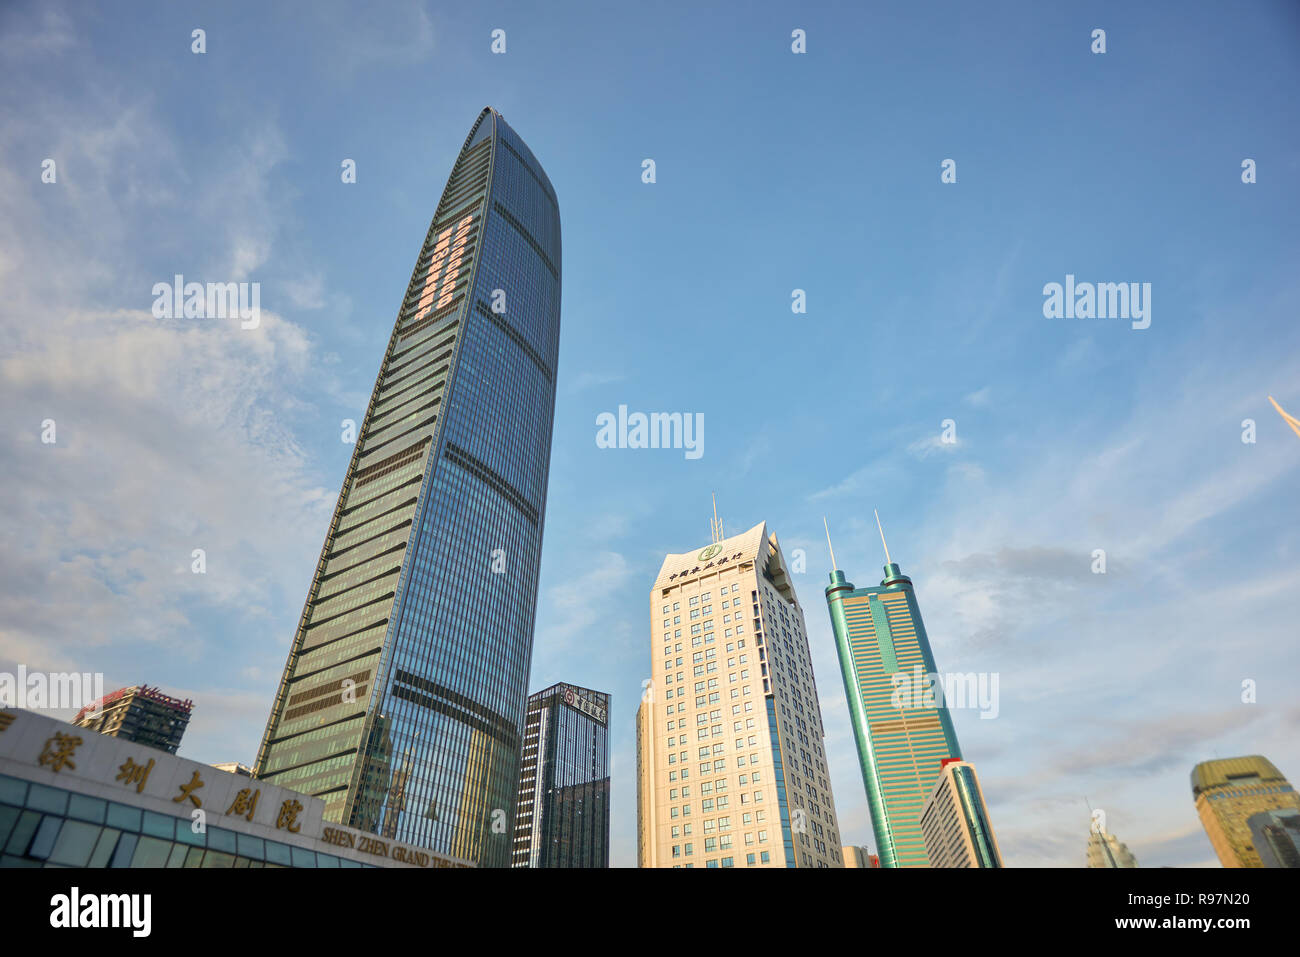 SHENZHEN, CHINA - MAY 28, 2014: Kingkey 100 at daytime. The KK100, formerly known as Kingkey 100 and Kingkey Finance Tower is a supertall skyscraper i - Stock Image